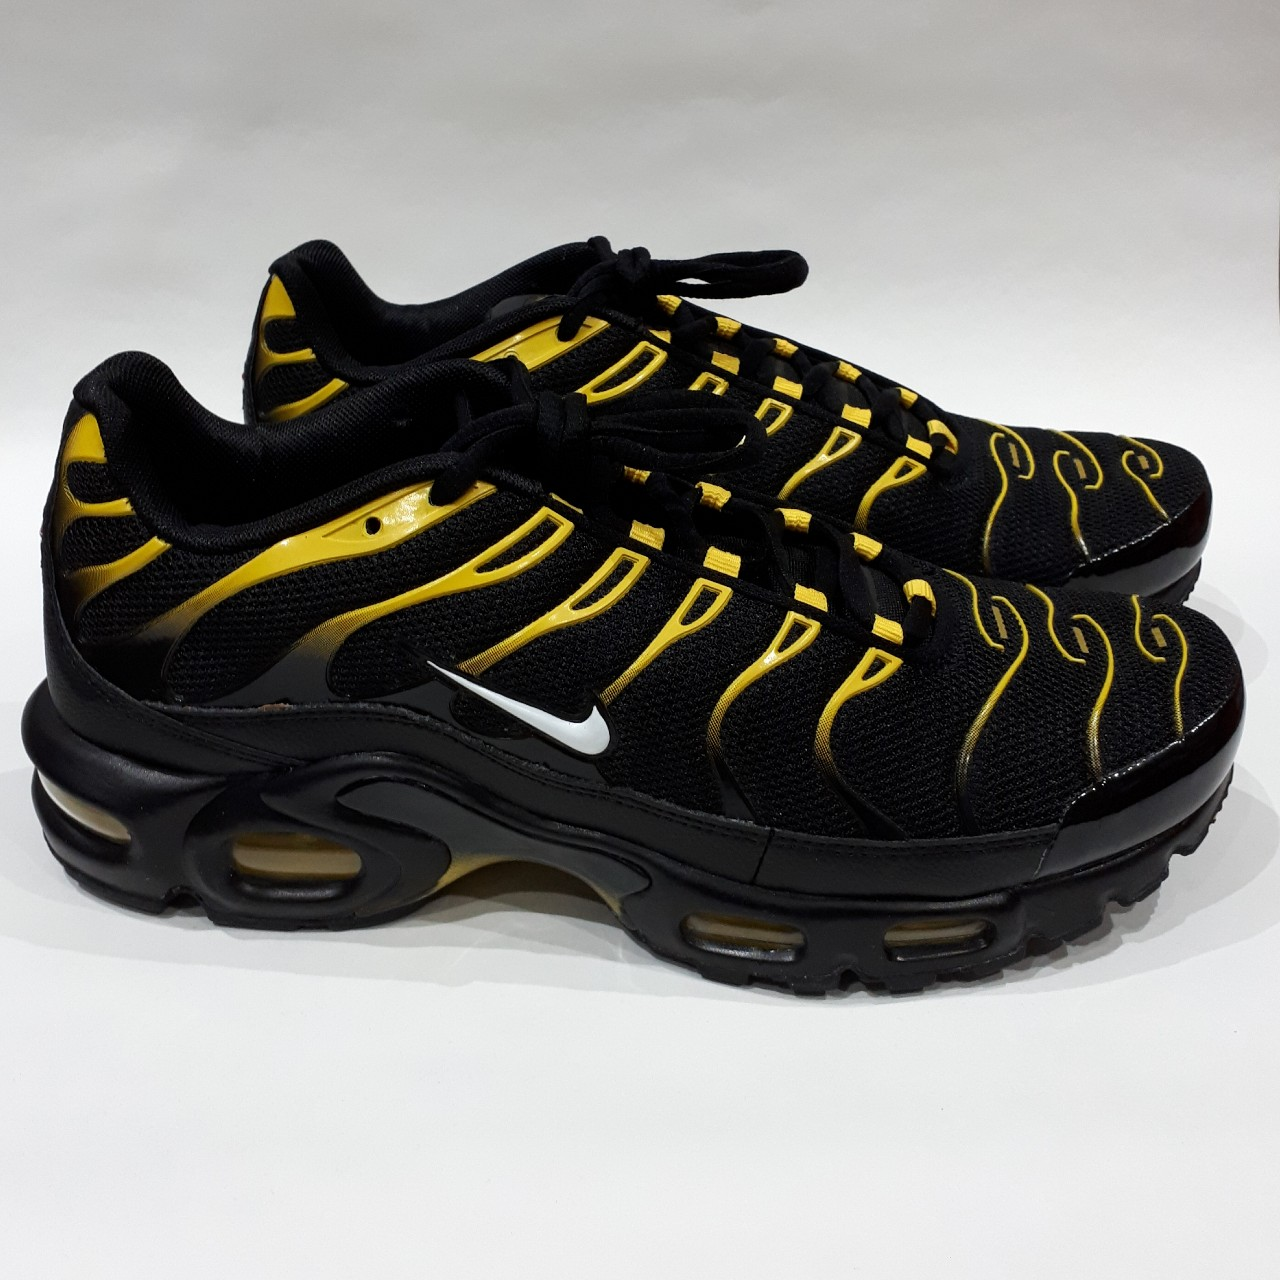 NIKE AIR MAX PLUS BLACKWHITE VIVID SULFUR SIZE Depop